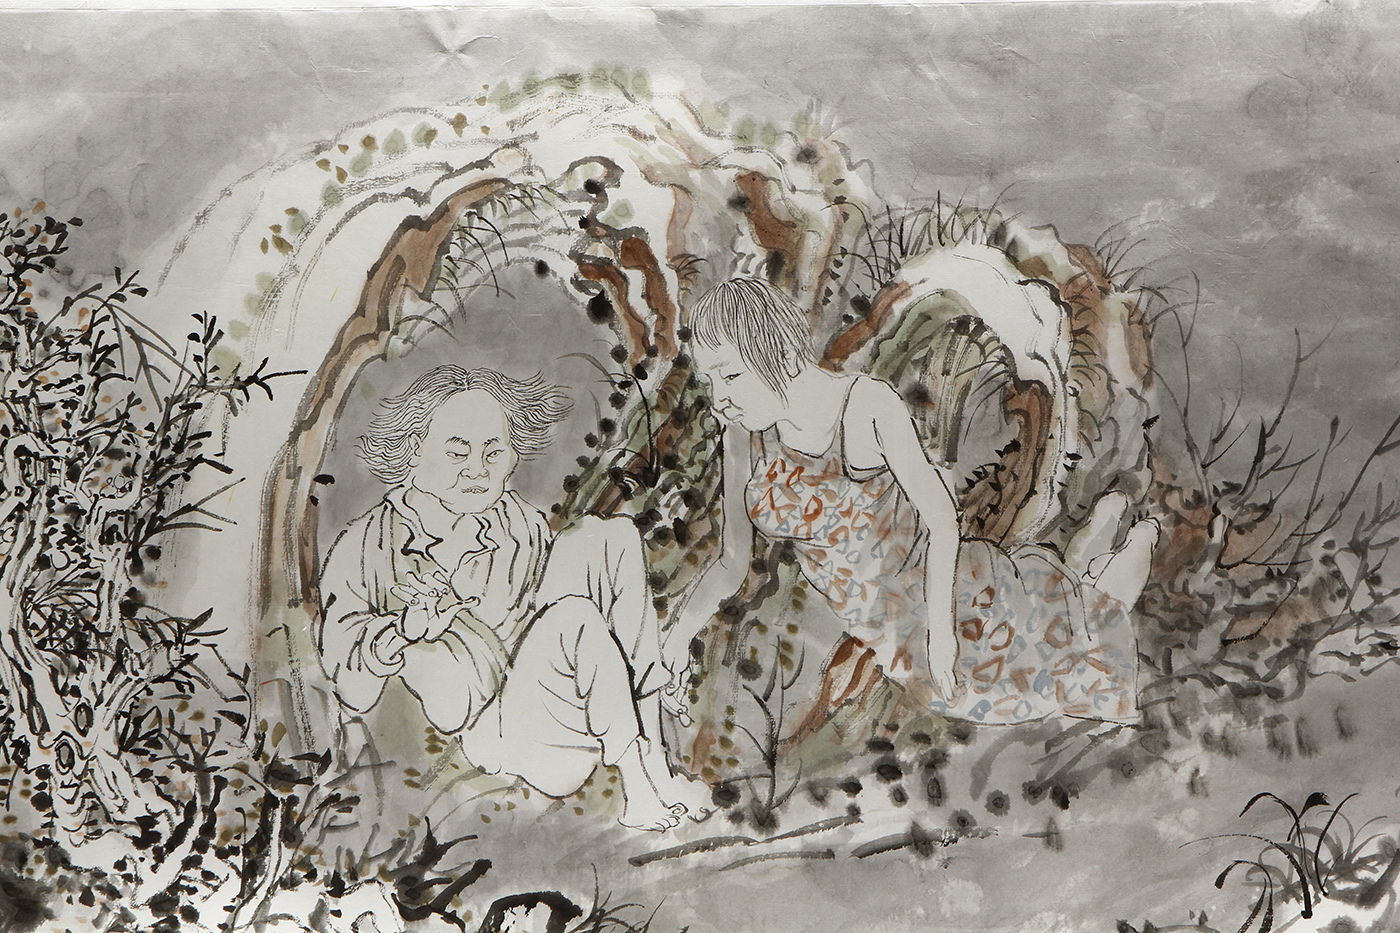 """Yun-Fei Ji, """"After the First Seventh Day"""" (detail, 2016), ink and watercolor on Xuan paper, suite of three scrolls: two measuring 17 in x 10 ft (43.2 cm x 3 m); one measuring 17 ½ x 15 ft (44.5 cm x 4.6 m) (courtesy the artist and James Cohan, New York) (photo by John Bentham, courtesy the Ruth and Elmer Wellin Museum of Art)"""